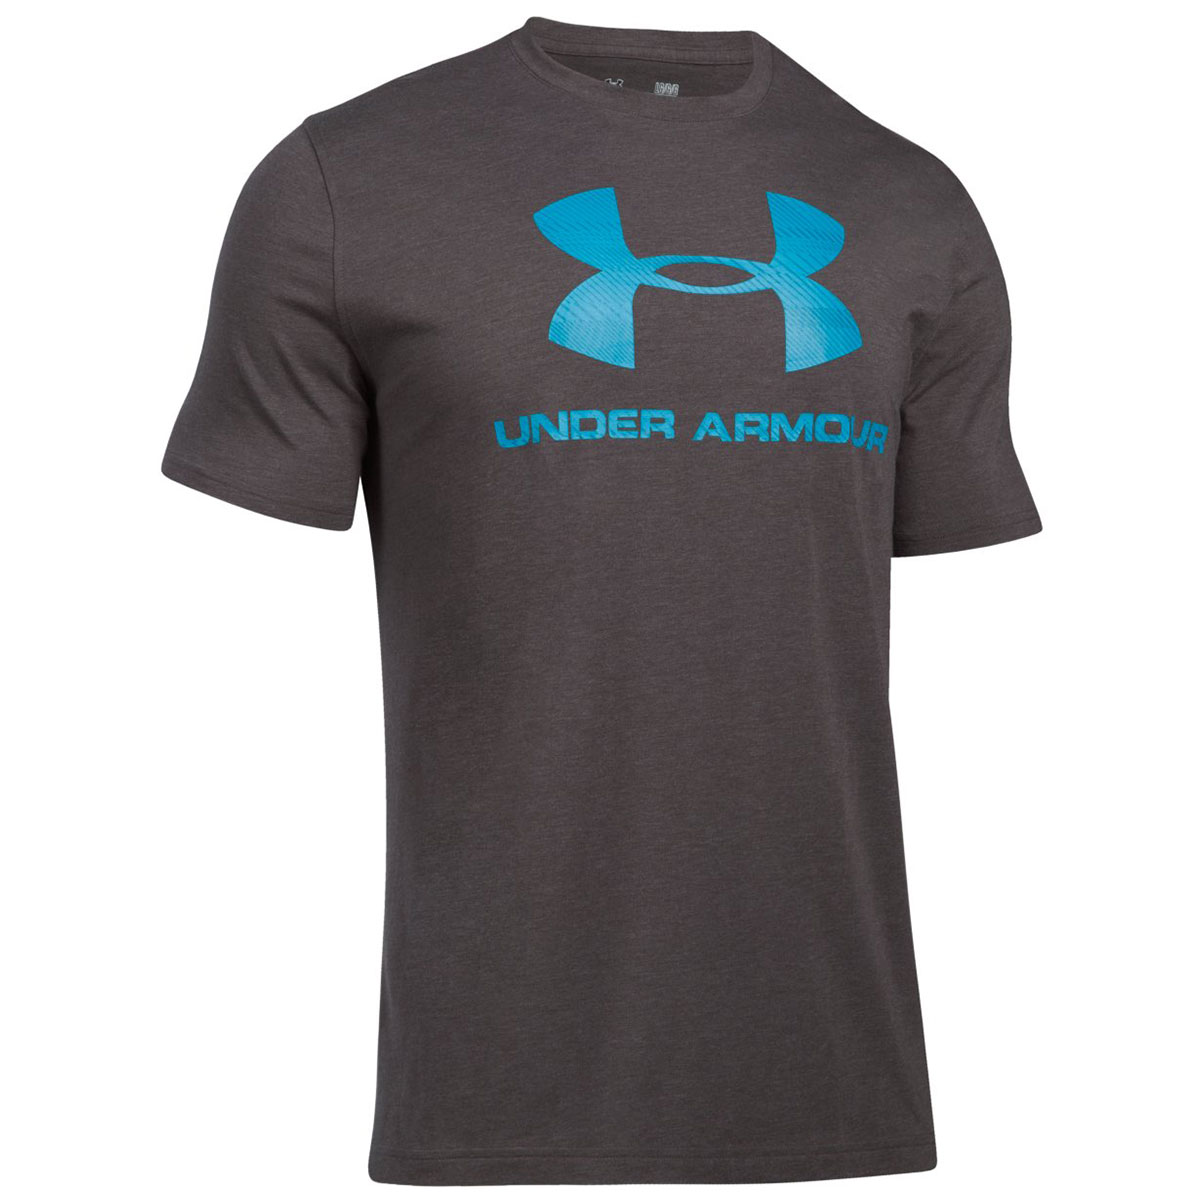 Under armour mens charged cotton sportstyle logo training for Under armor business shirts